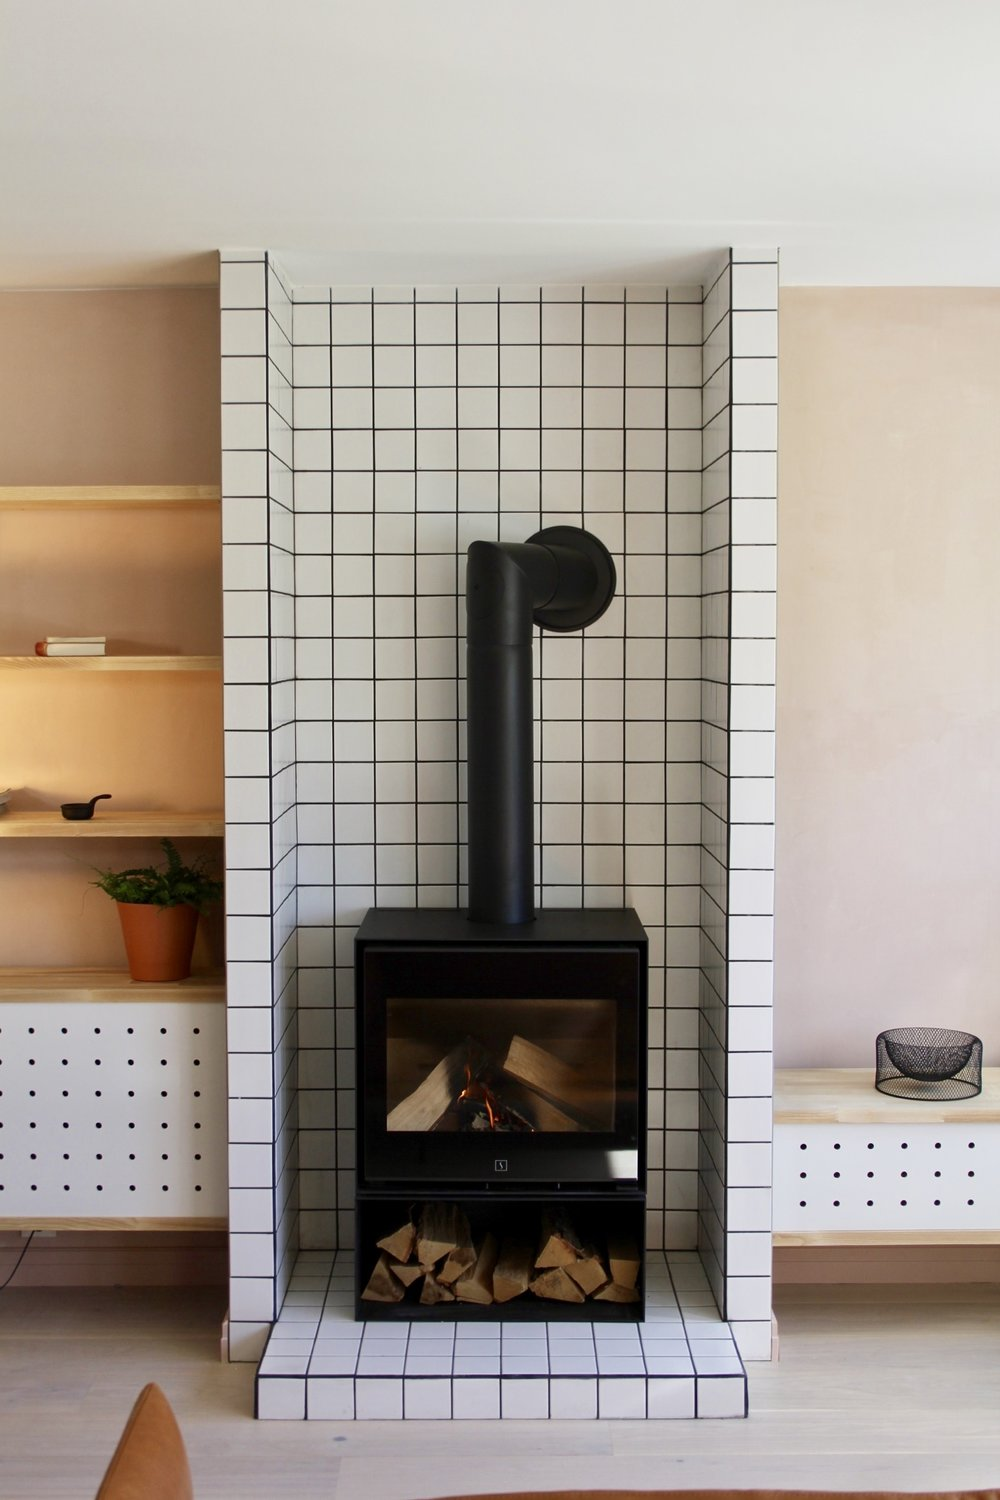 A fireplace was installed surrounded with white tiles, the same as in the kitchen,  to protect the surrounding shelves and furniture.